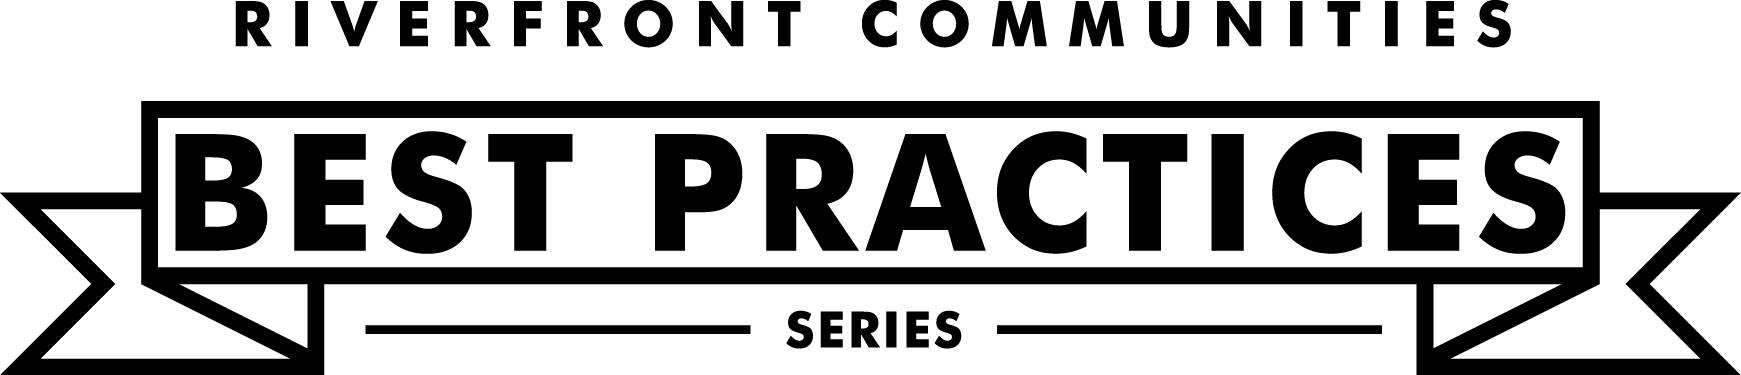 Best Practices Series logo - black